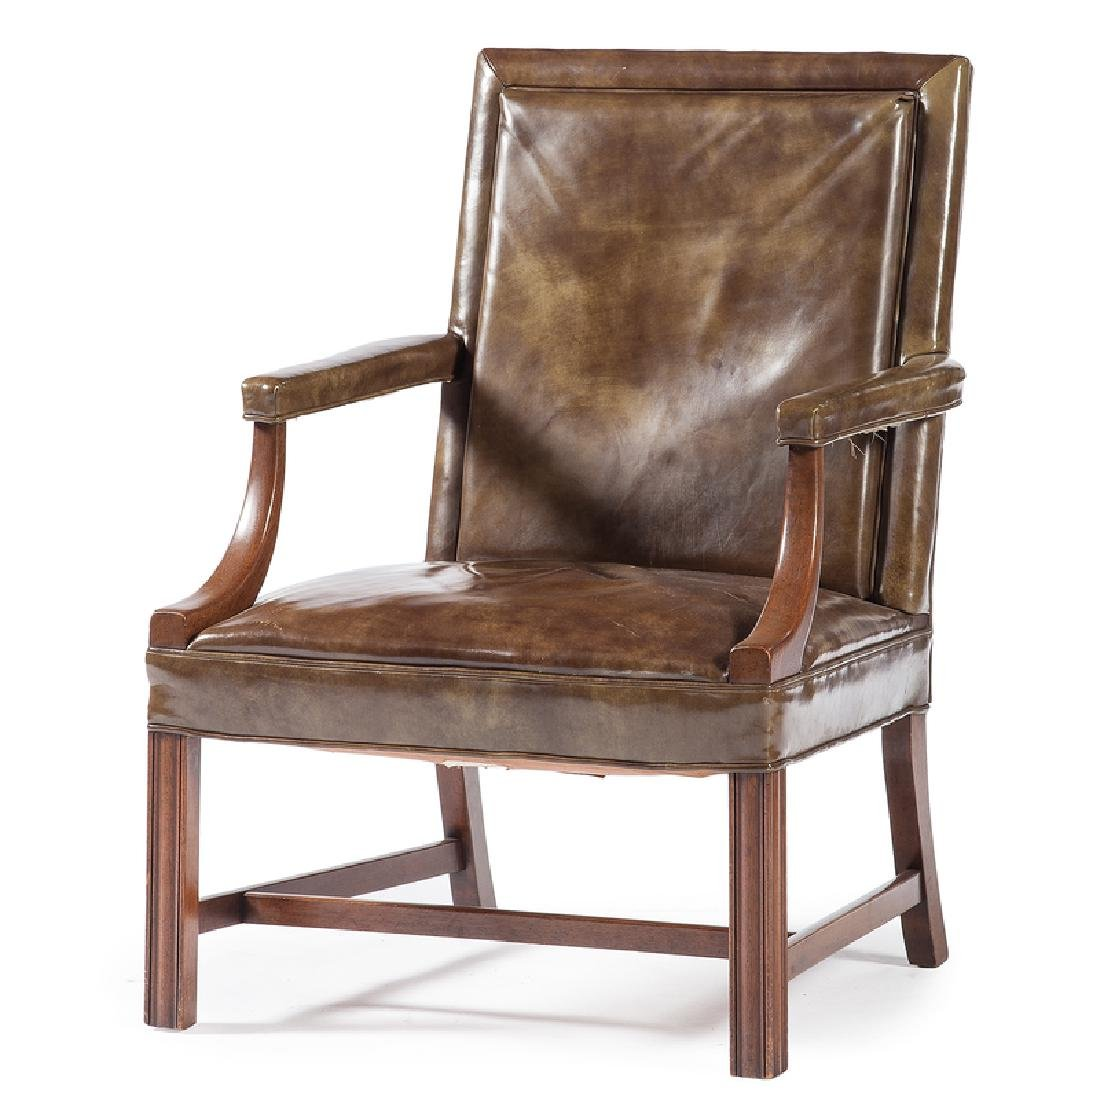 Chippendale-style Open Armchair